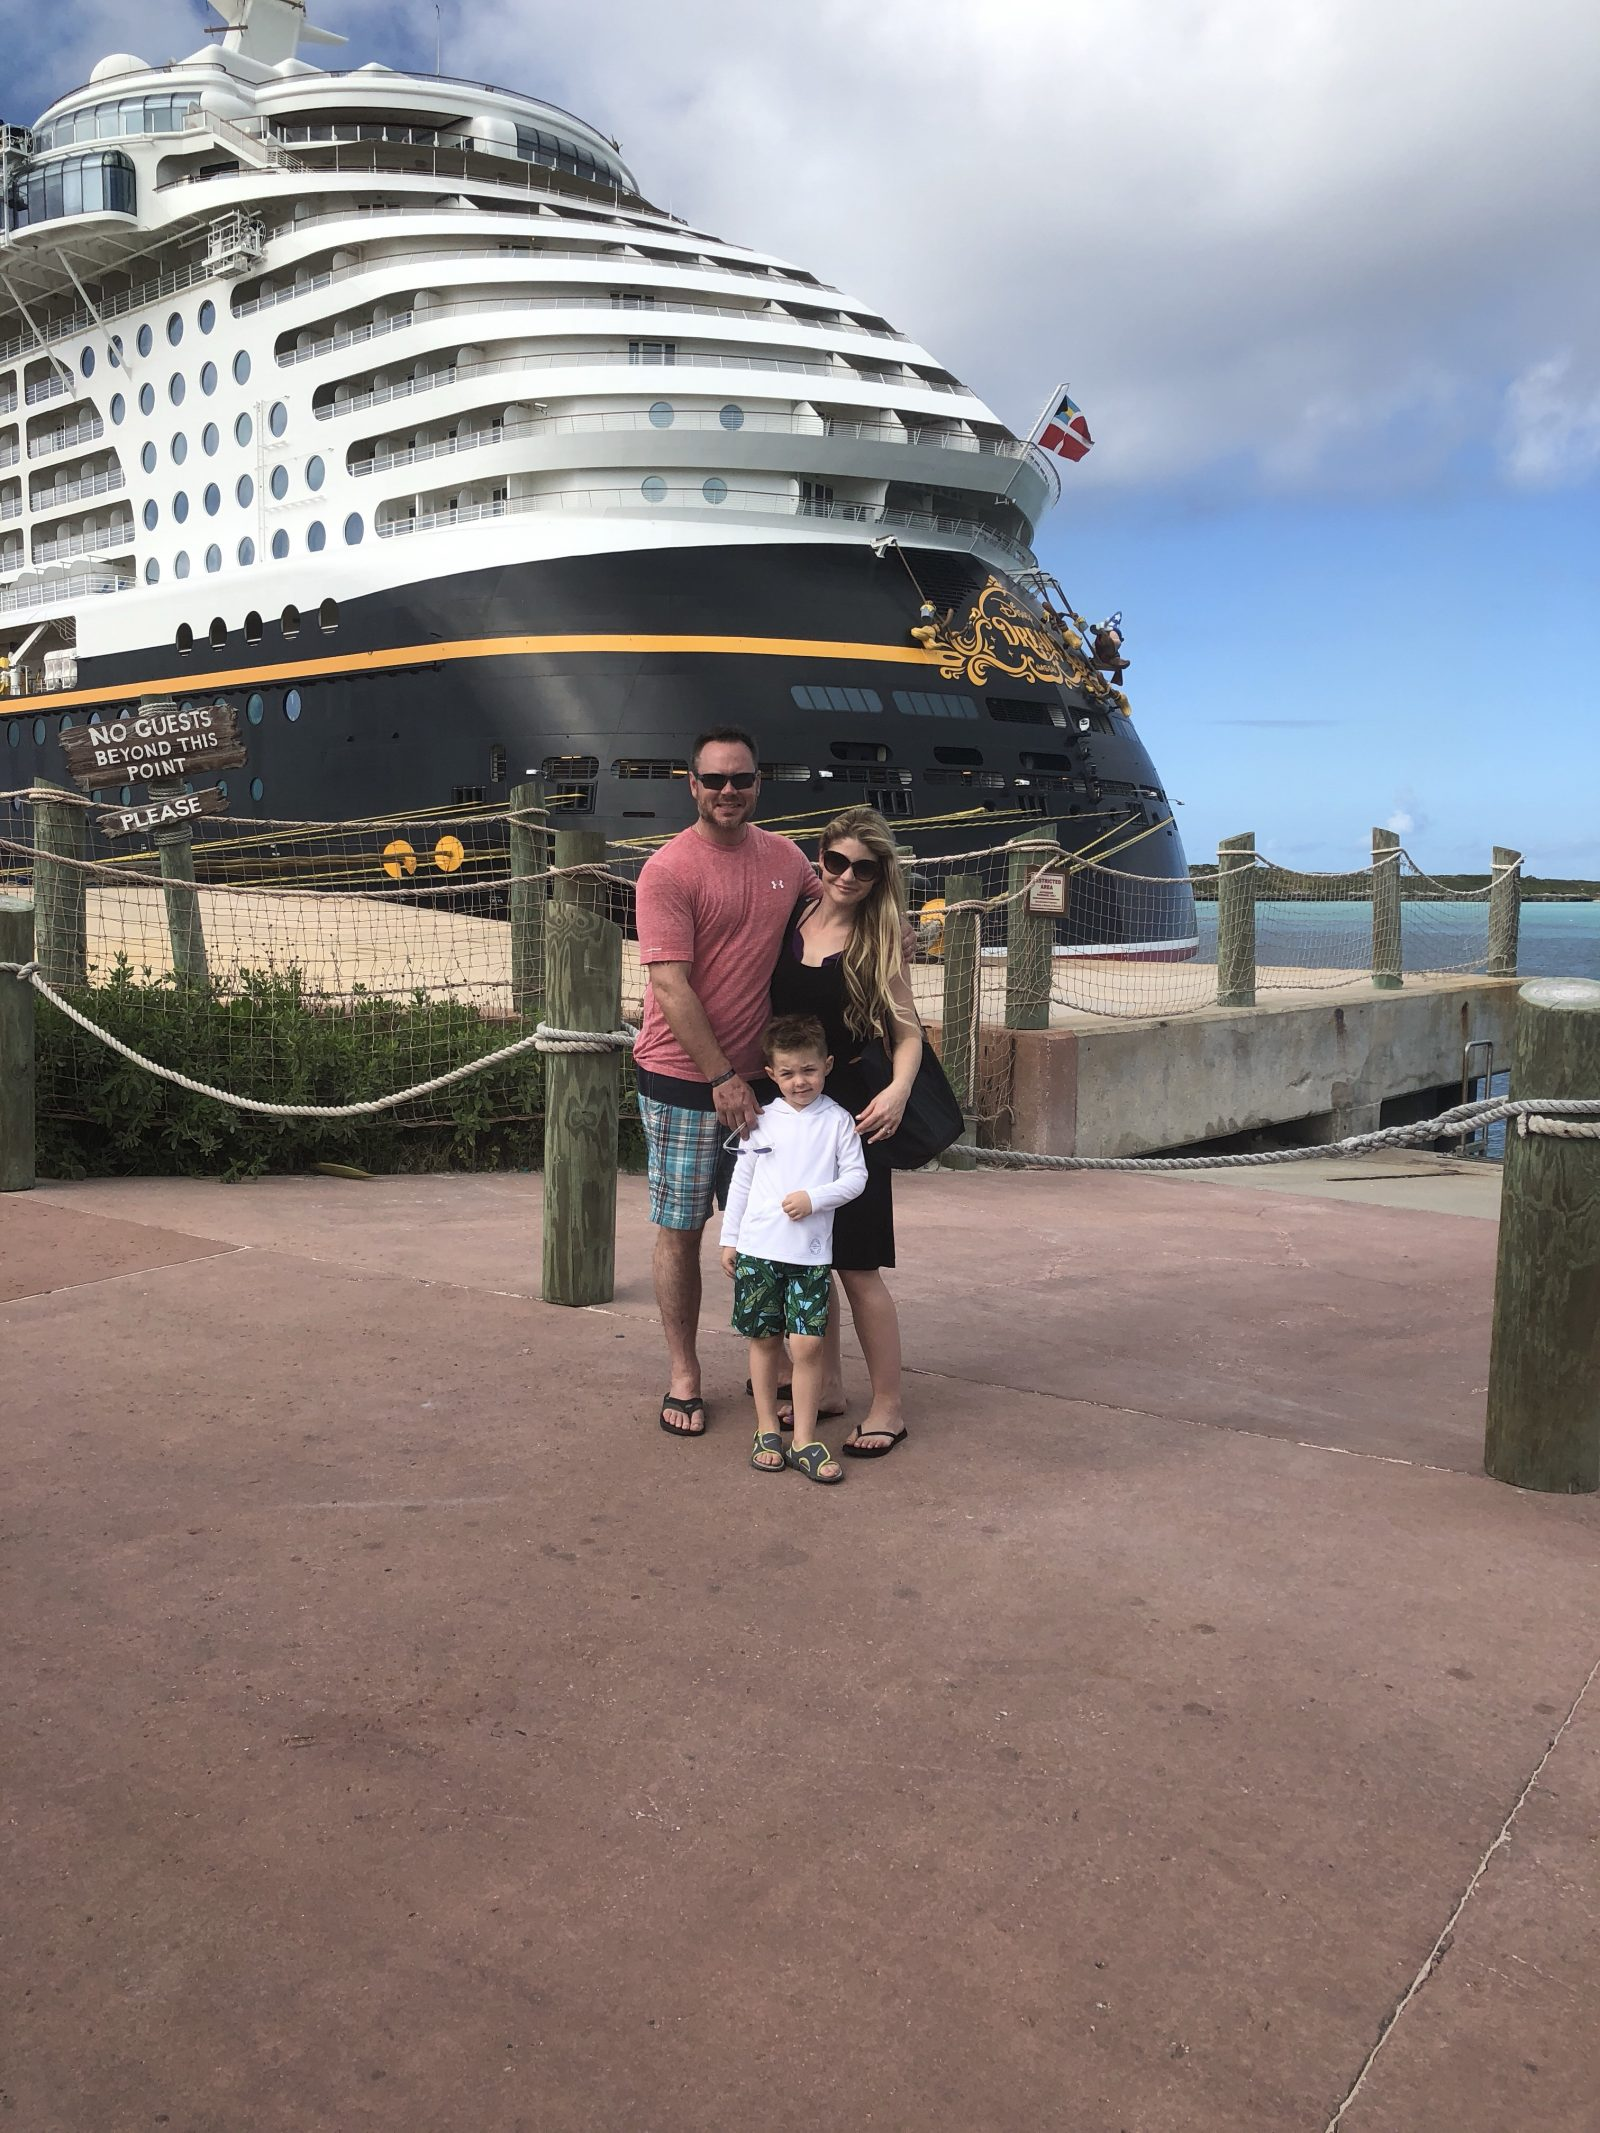 Disney Dream Cruise Ship -Family Vacation Castaway Cay - DisneySMMC Disney Social Media Moms Celebration 2018 via Misty Nelson #disneysmmc #disneymoms